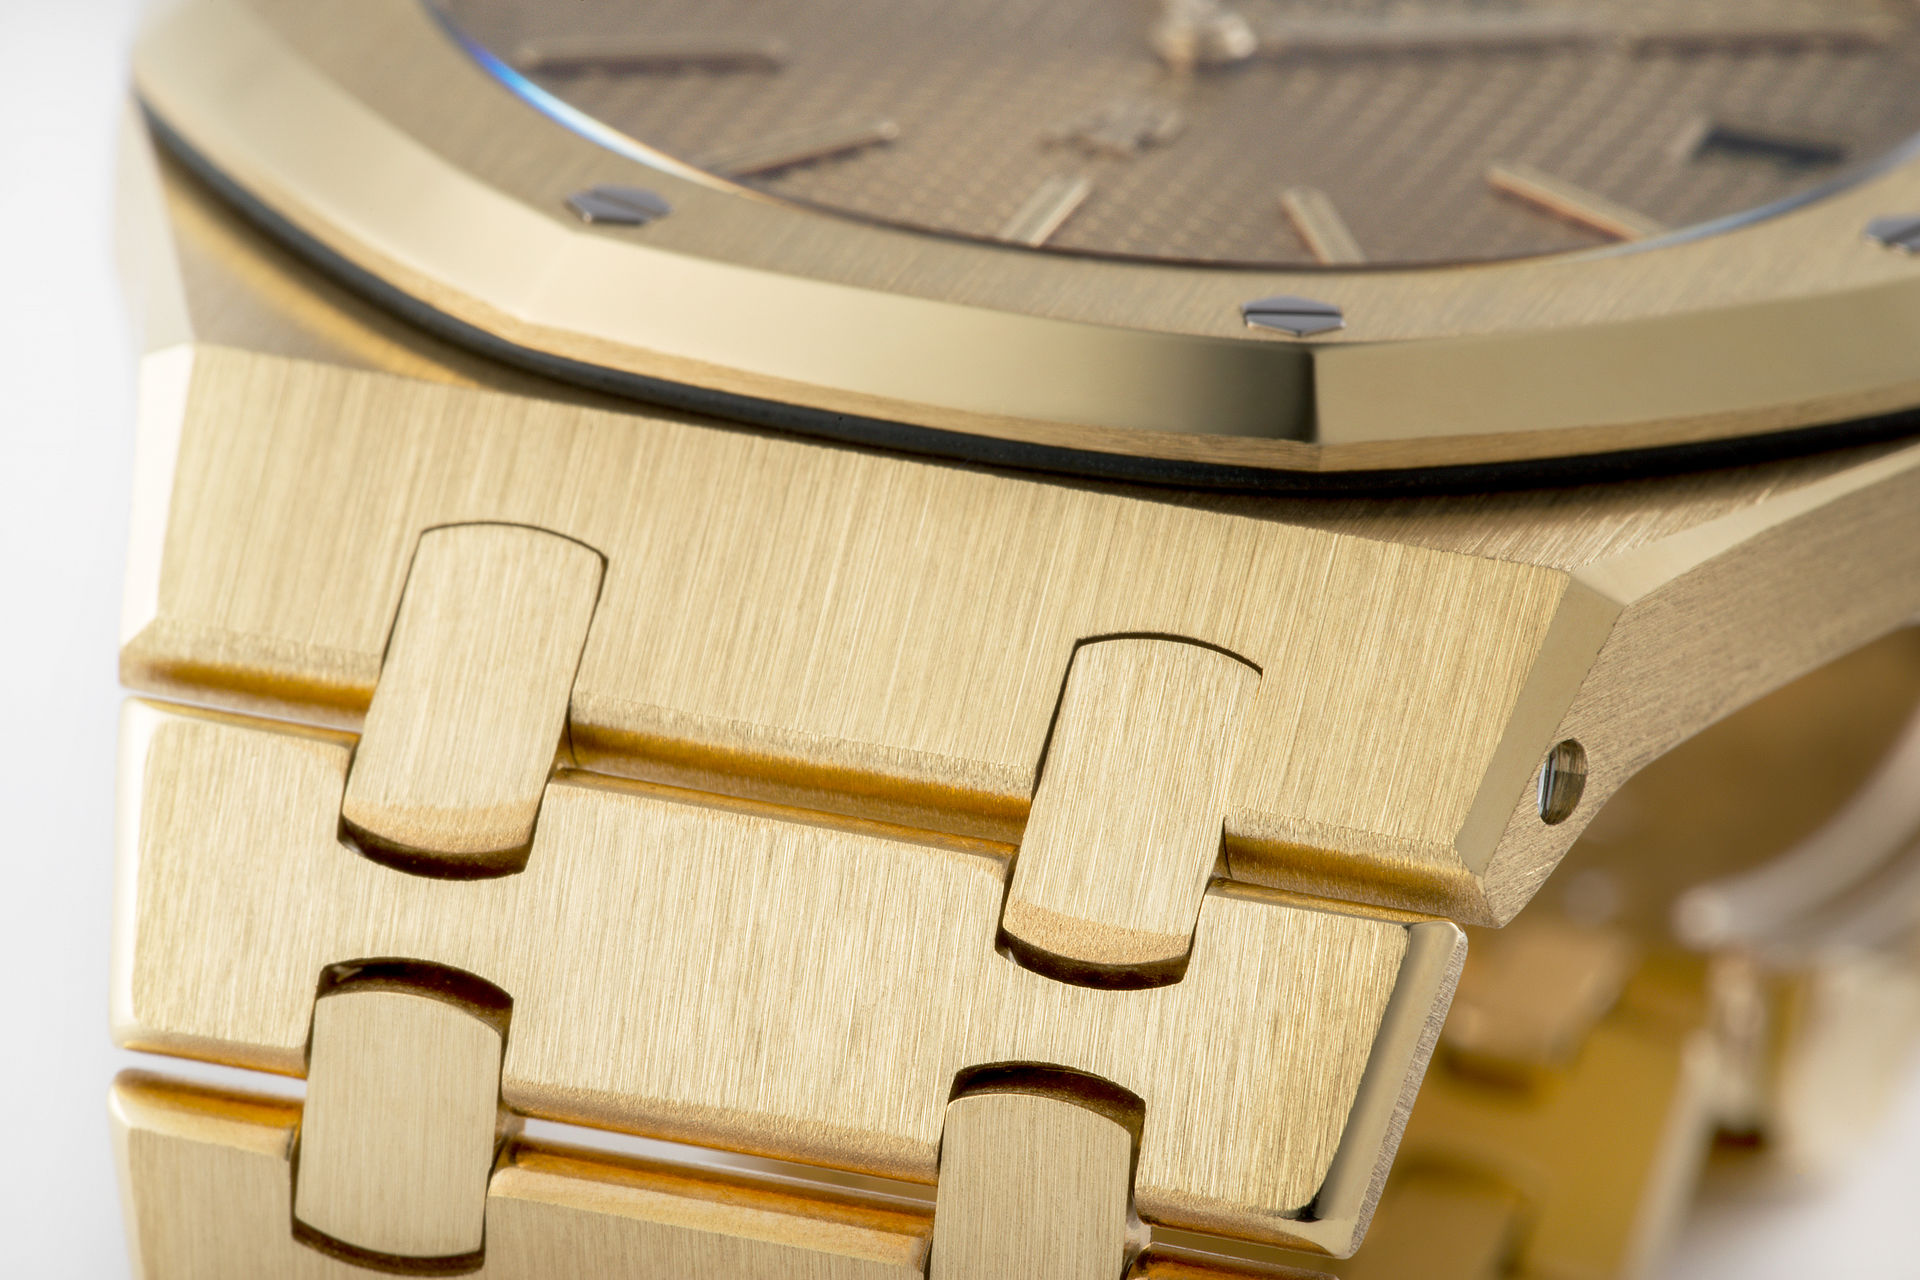 ref 5402BA | 'Yellow Gold' 39mm | Audemars Piguet Royal Oak